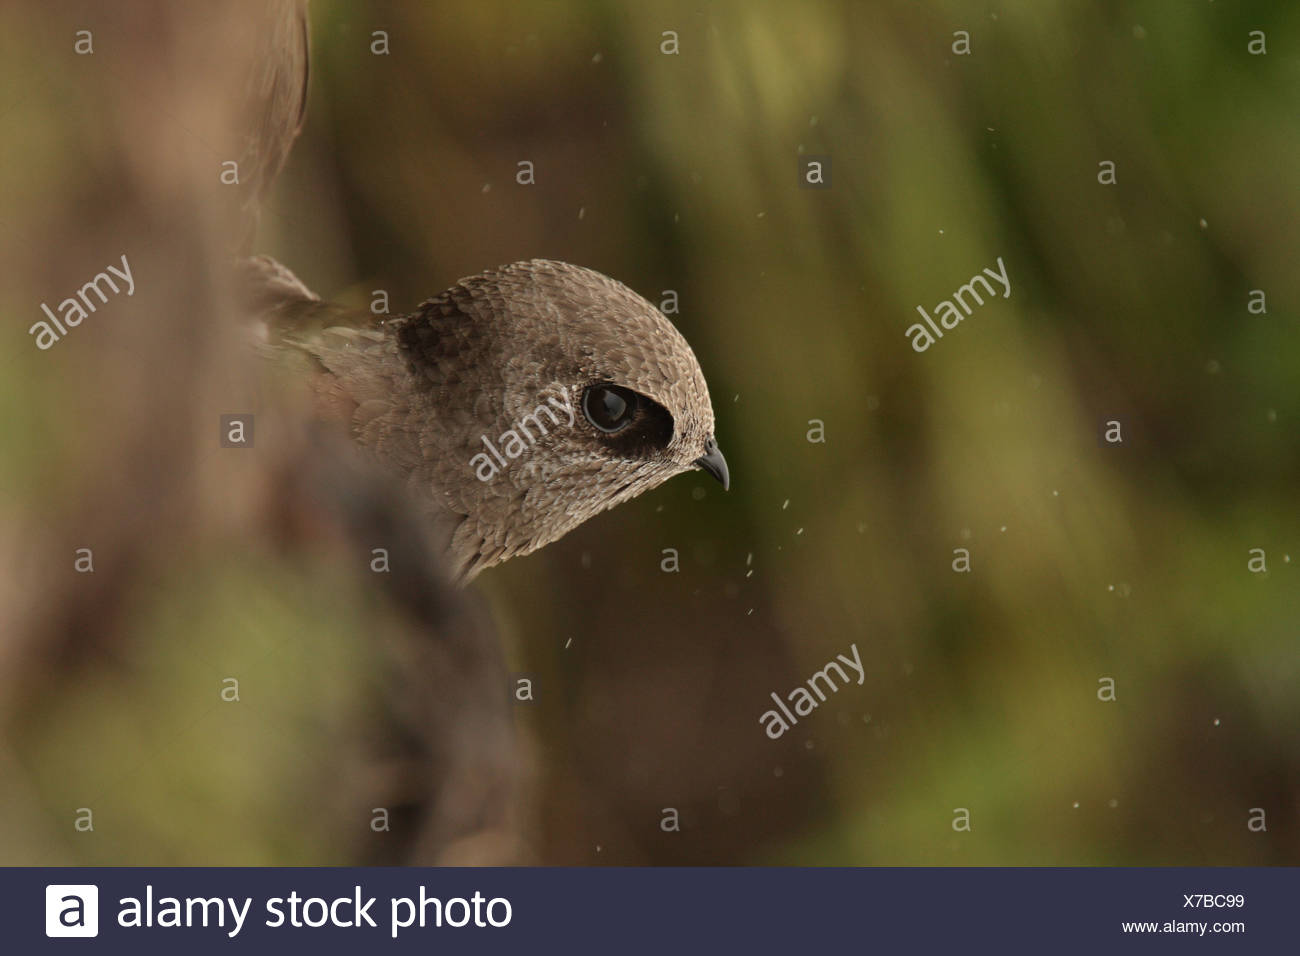 Great Dusky Swift Cypseloides senex adult looking out roost site beside waterfall Parque Nacional Iguazu Misiones Argentina - Stock Image